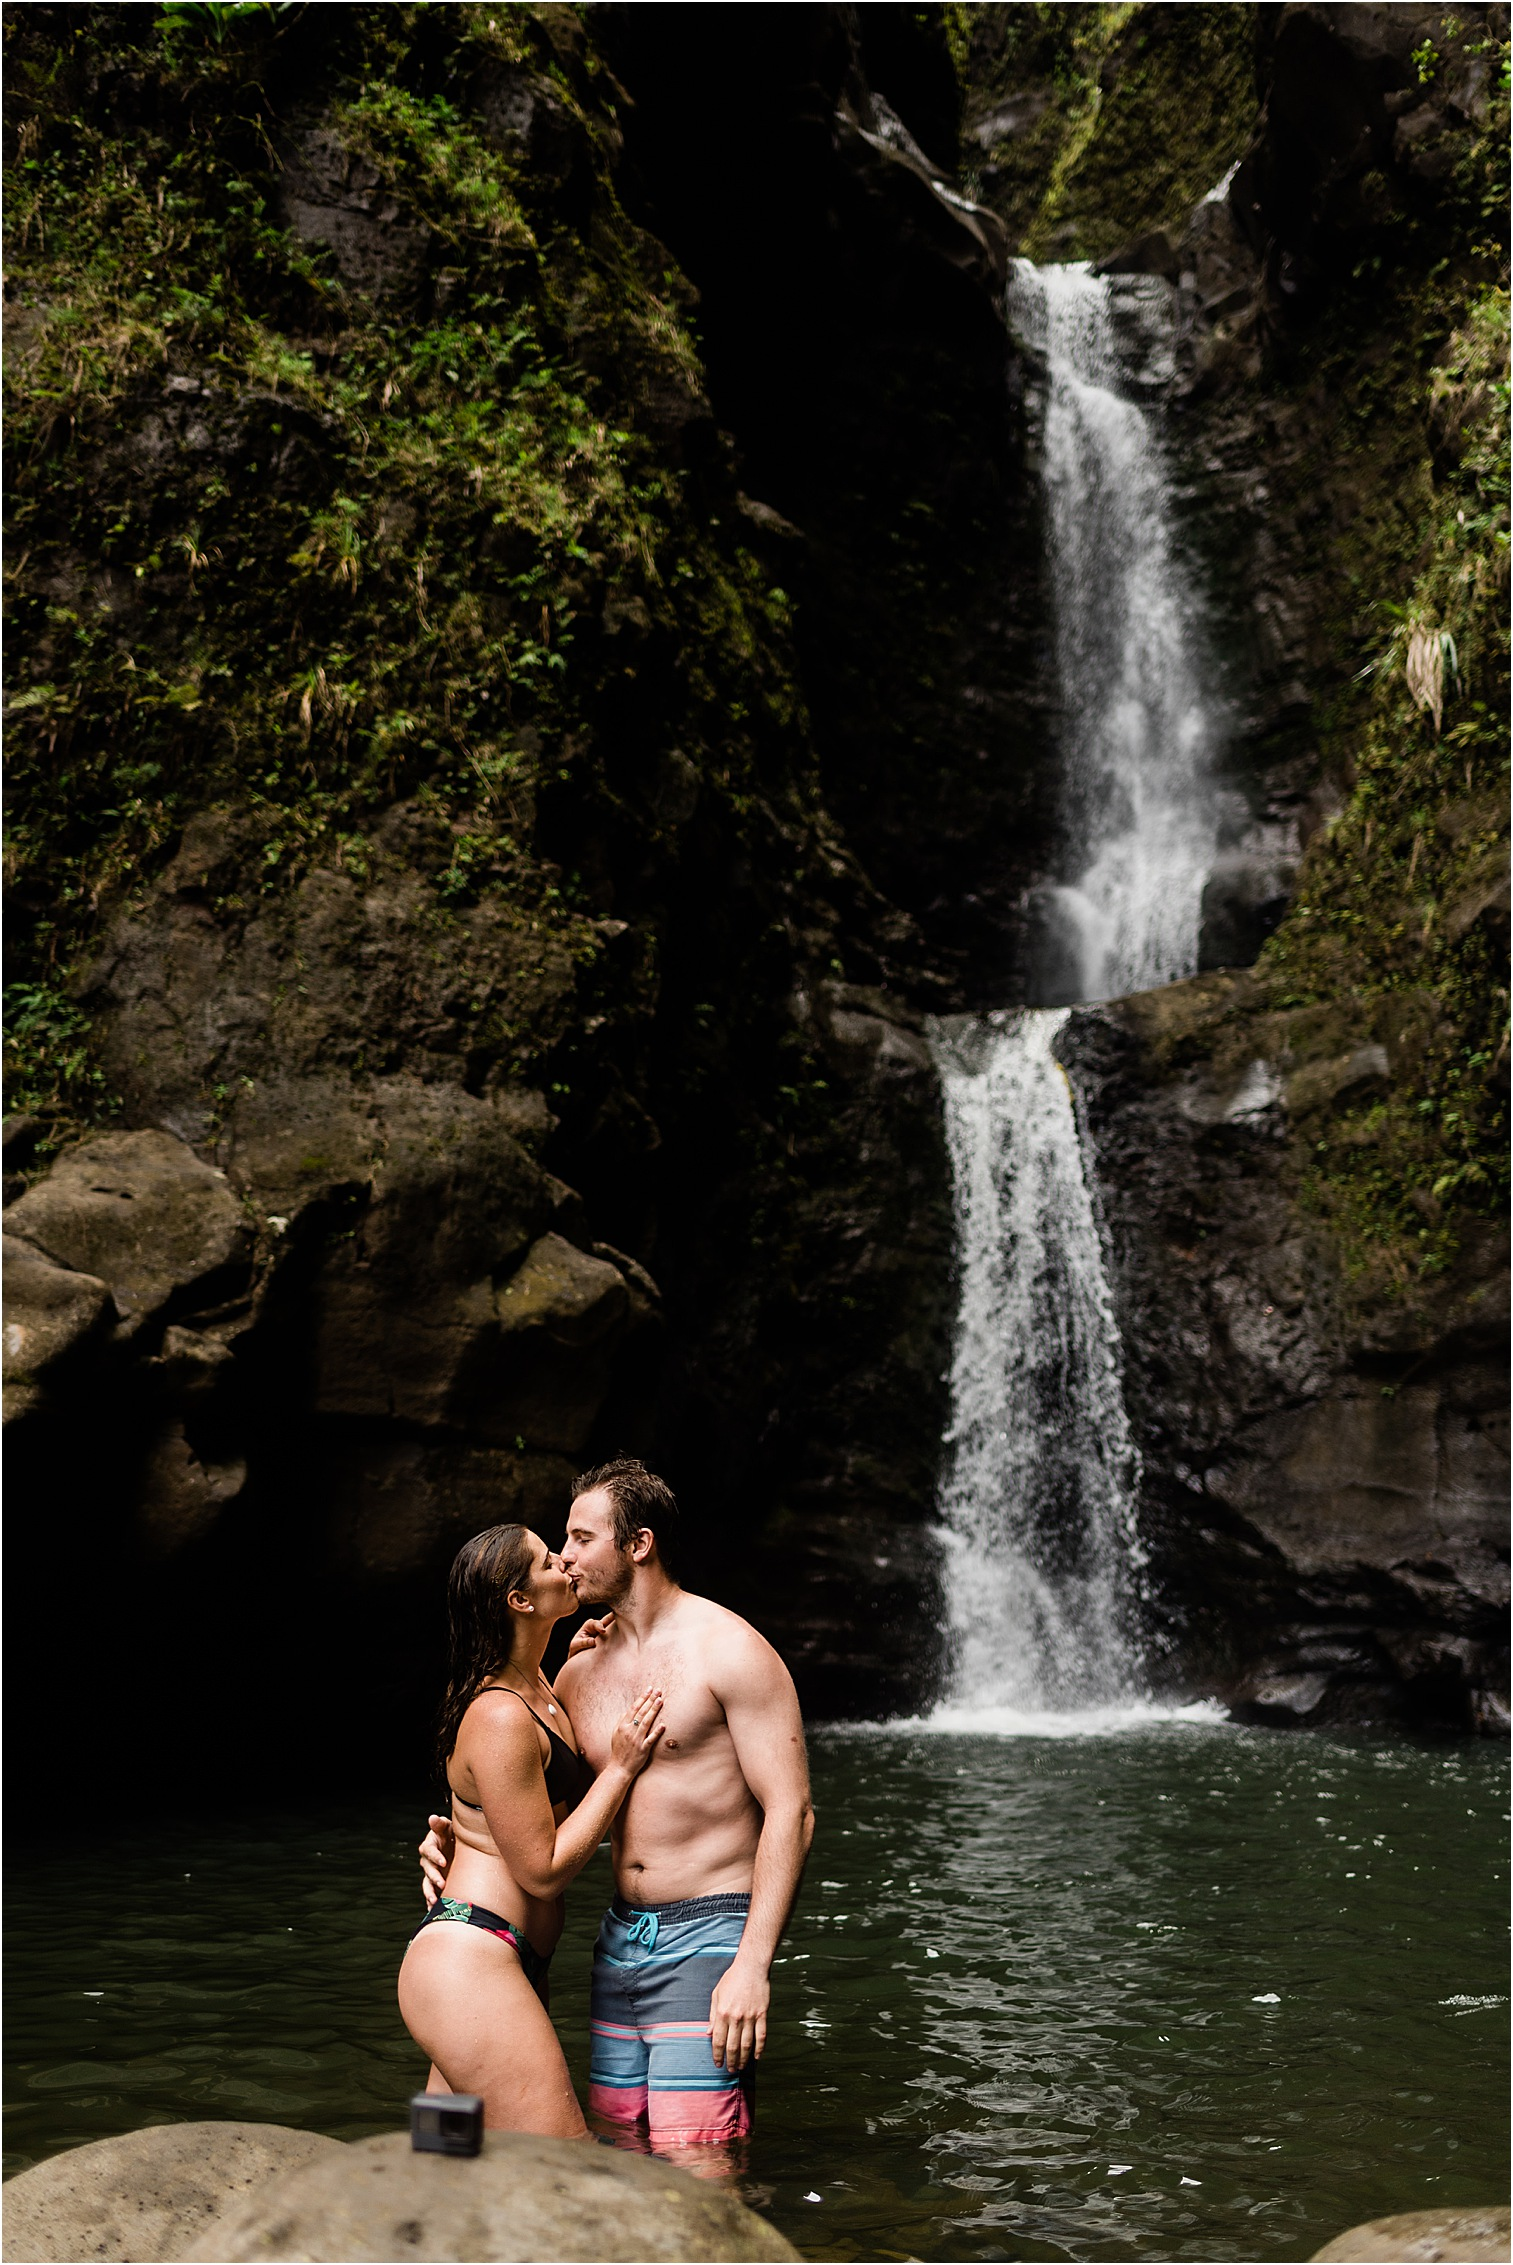 Couple at a waterfall on Kauai. Image by Forthright Photo, Kauai Wedding Photographers